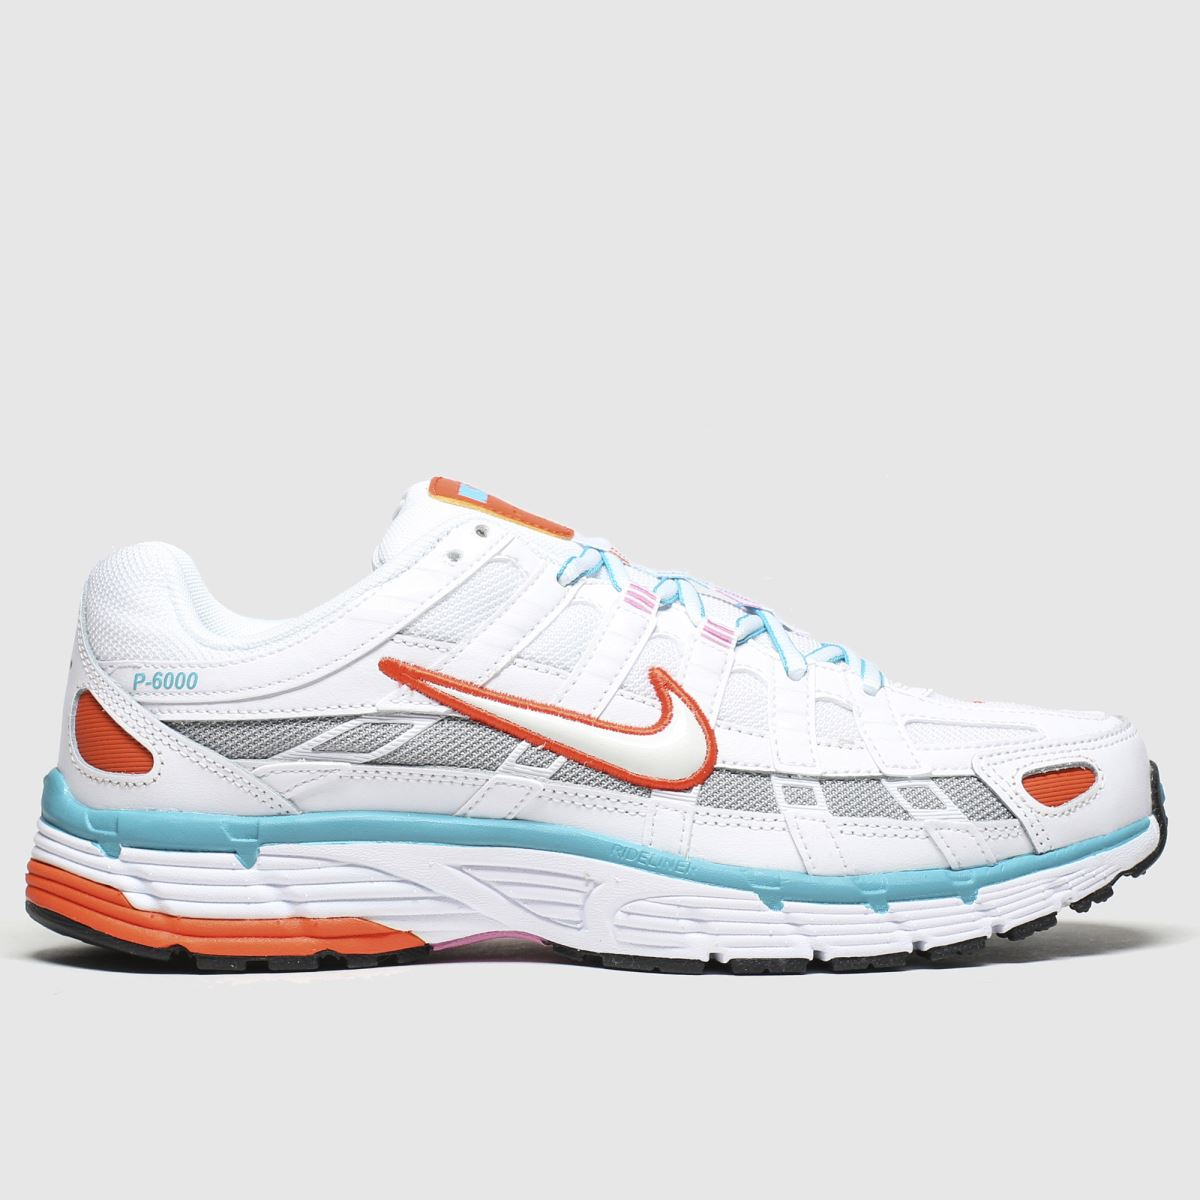 Nike Nike White & Pl Blue P-6000 Trainers